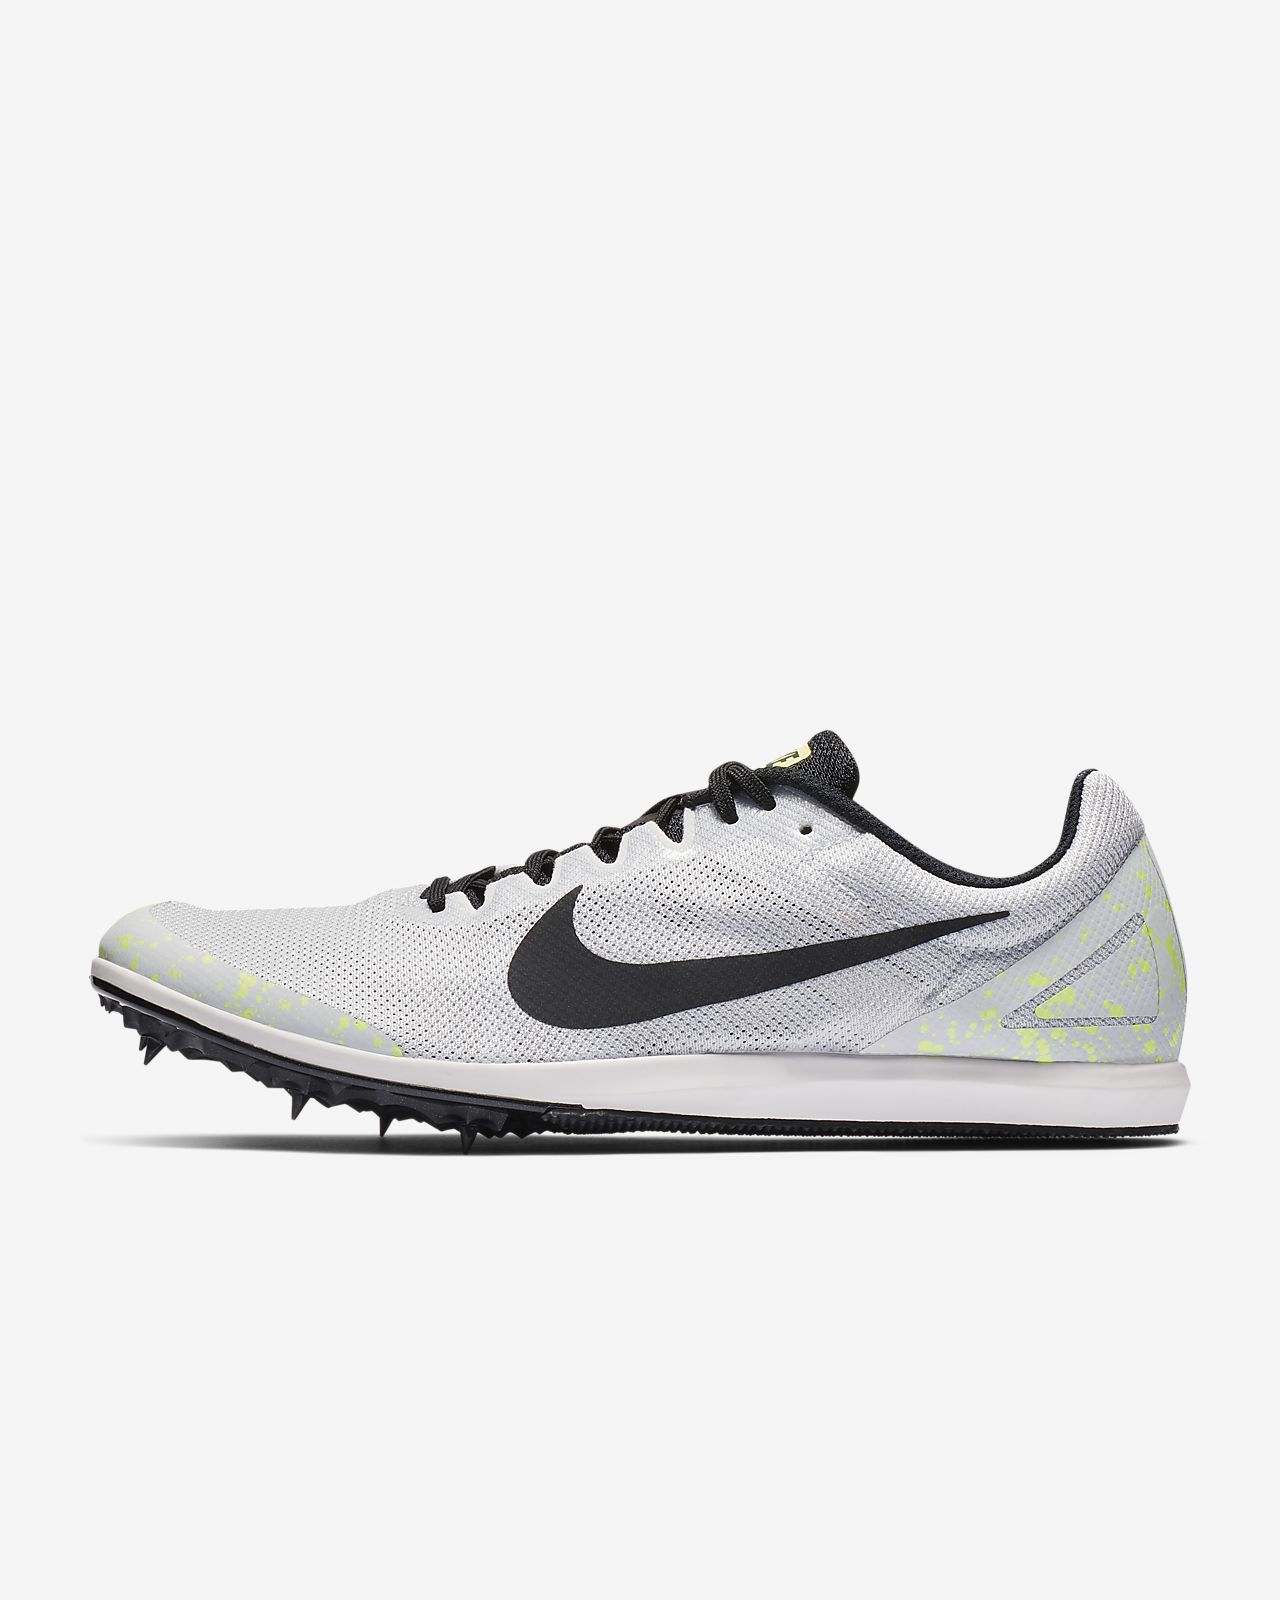 sports shoes 7140e 52188 ... Nike Zoom Rival D 10 Unisex Track Spike